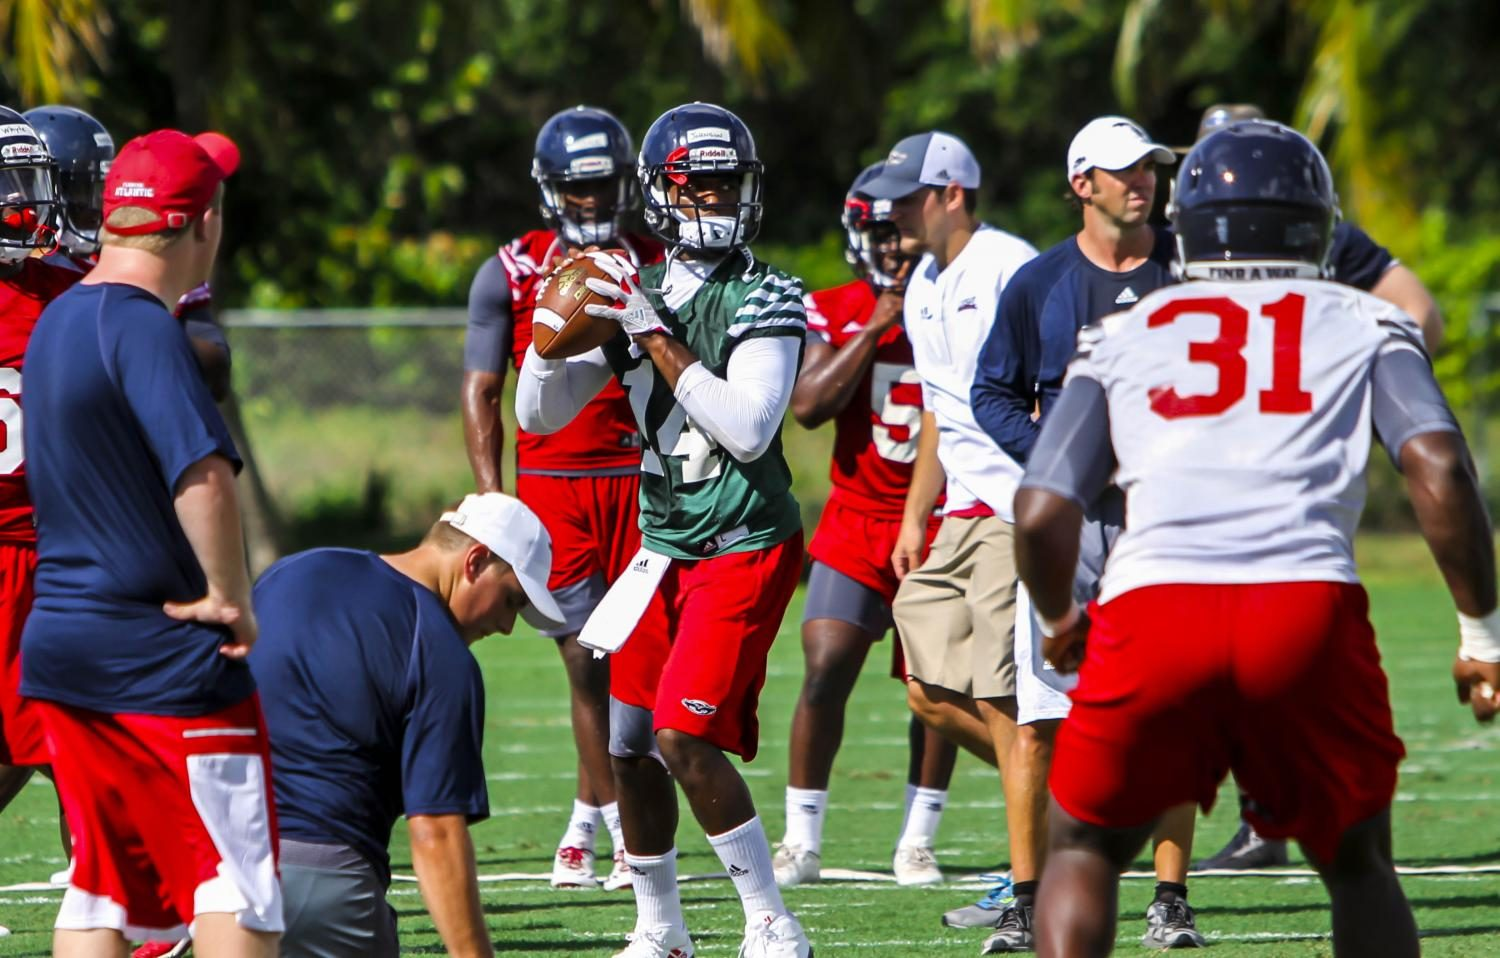 FAU quarterback De'Andre Johnson (14) prepares to throw a ball to his teammate during practice play. Alex Rodriguez | Photo Editor